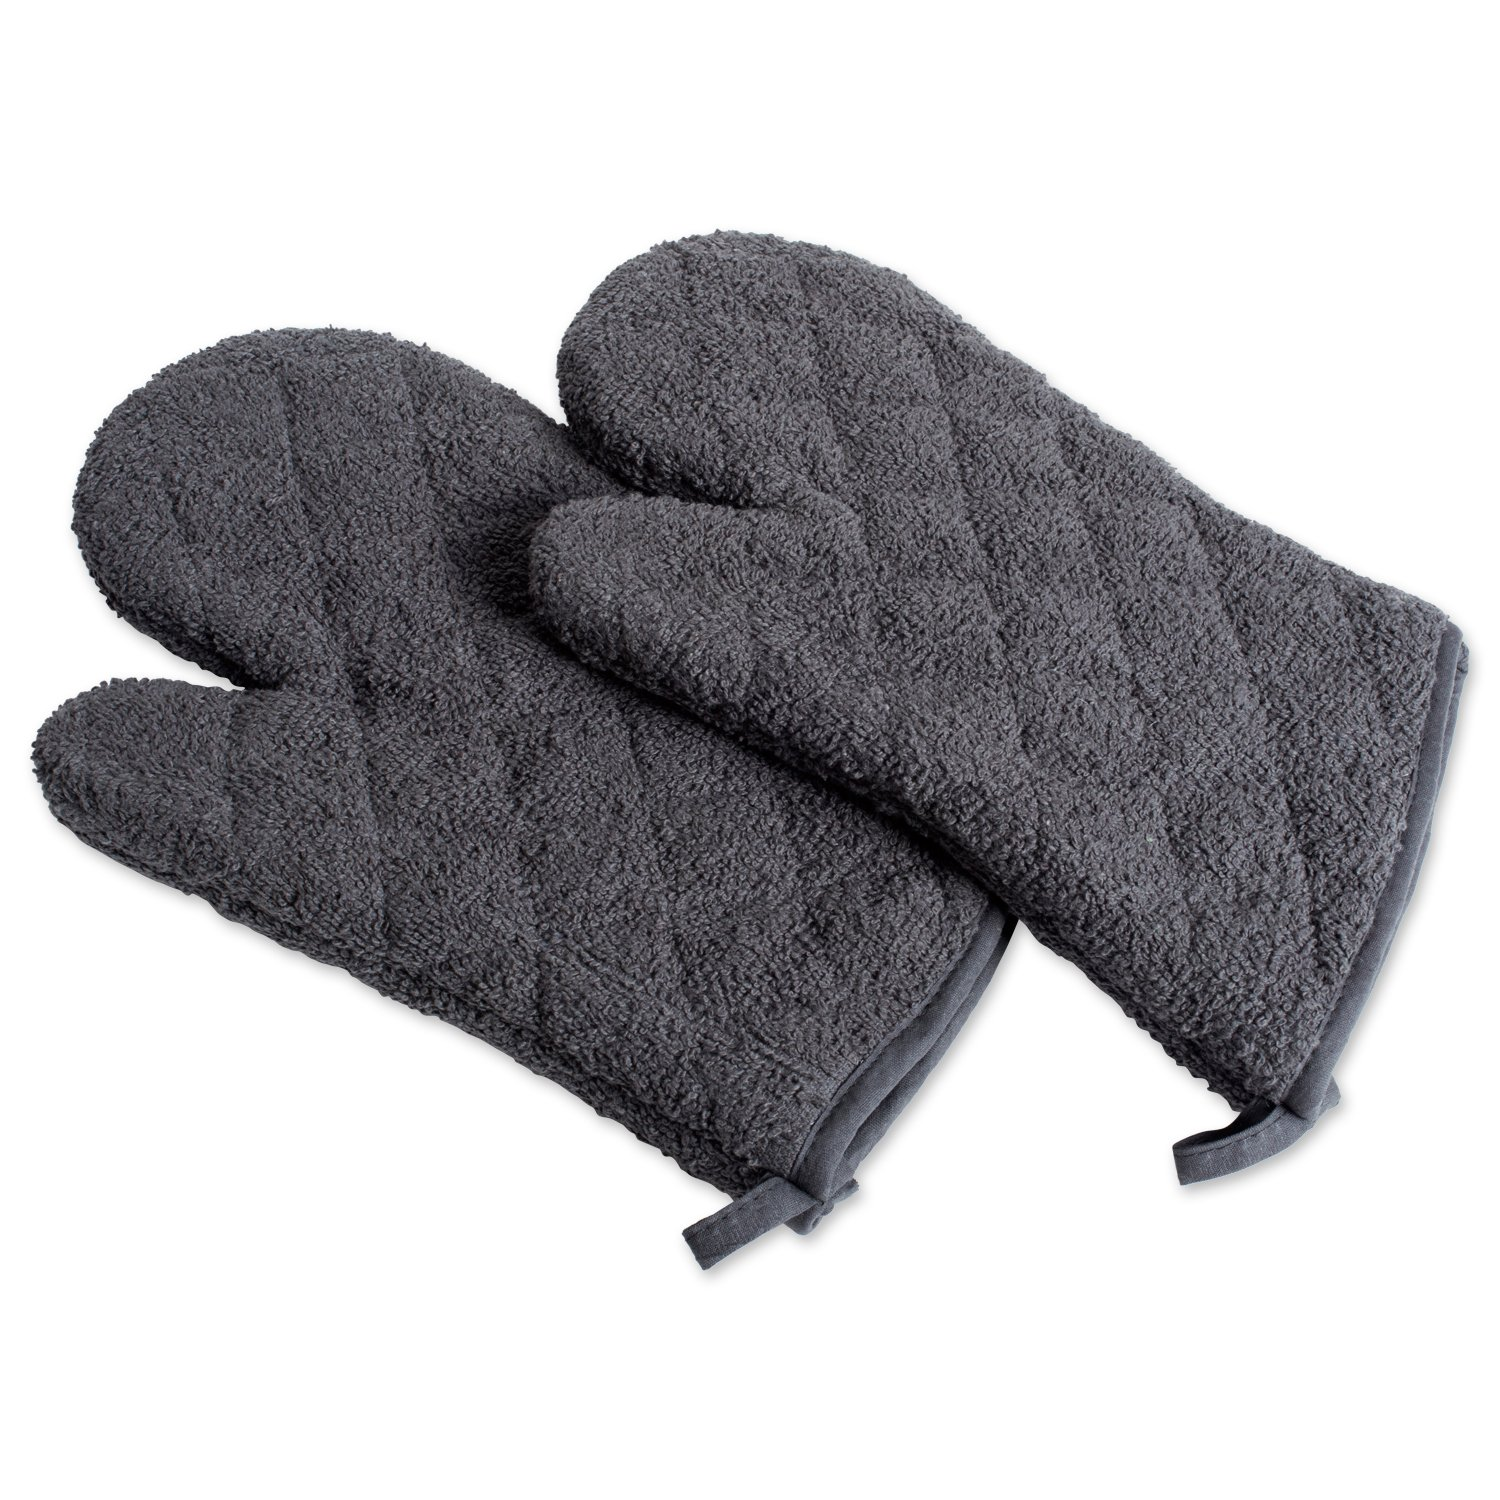 DII 100% Cotton, Terry Oven Mitts 7 x 13, Heat Resistant, Machine Washable for Everyday Kitchen Basic, Set of 2, Mineral Gray, Ovenmitt, 2 Piece